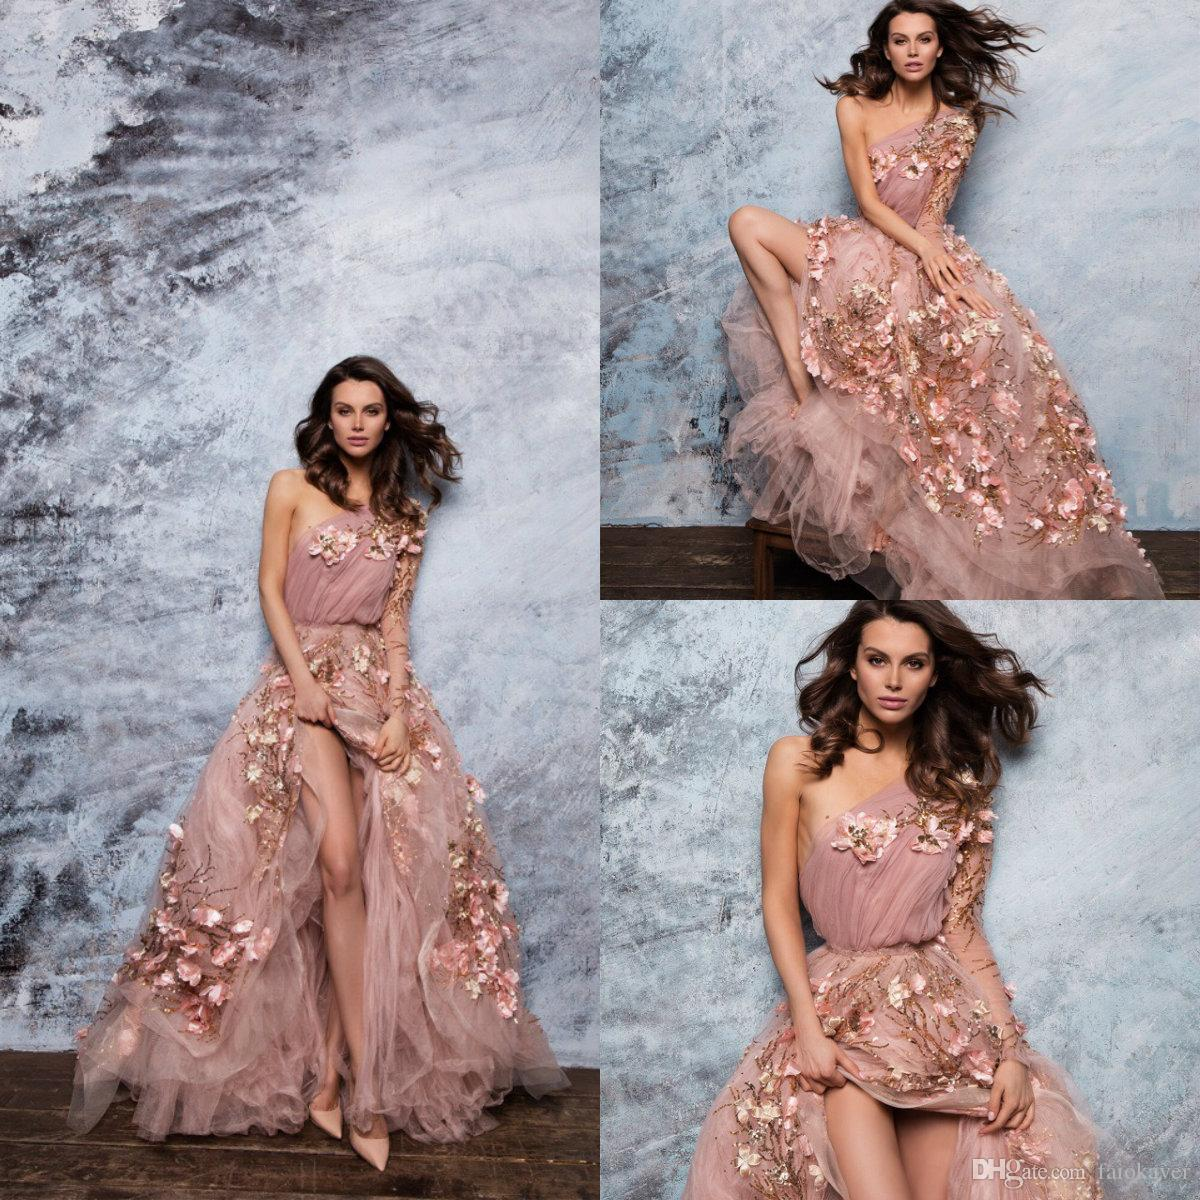 59ef1f9fcd5a 2019 Paolo Sebastian Prom Dresses One Shoulder A Line Lace 3D Floral Long  Sleeve Evening Dress Sweep Train Custom Made Formal Party Gowns Websites  For Prom ...